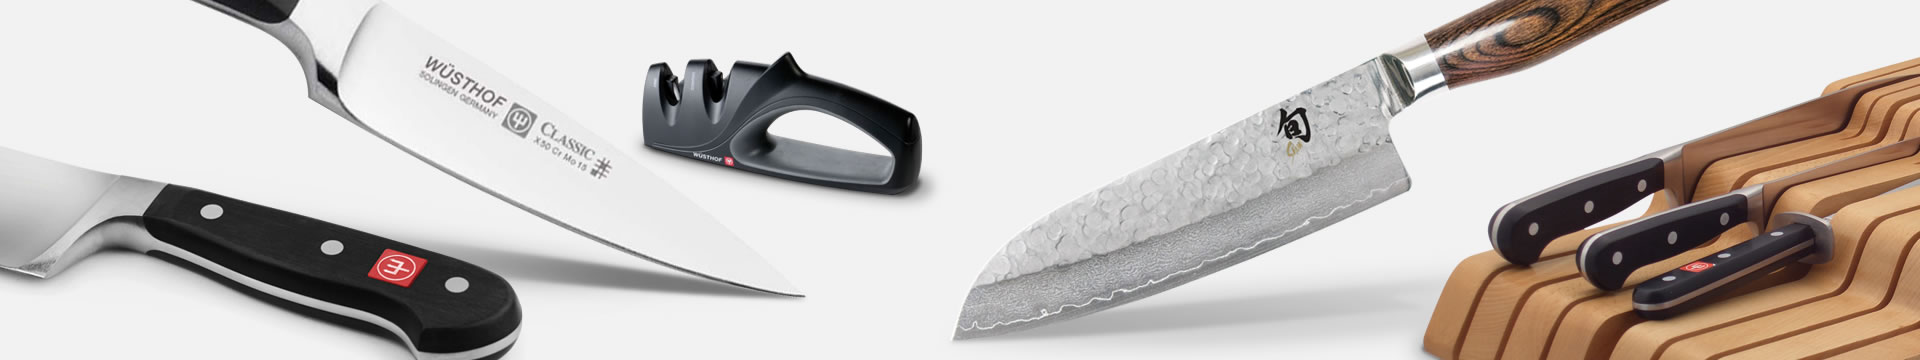 Banner image of Knives